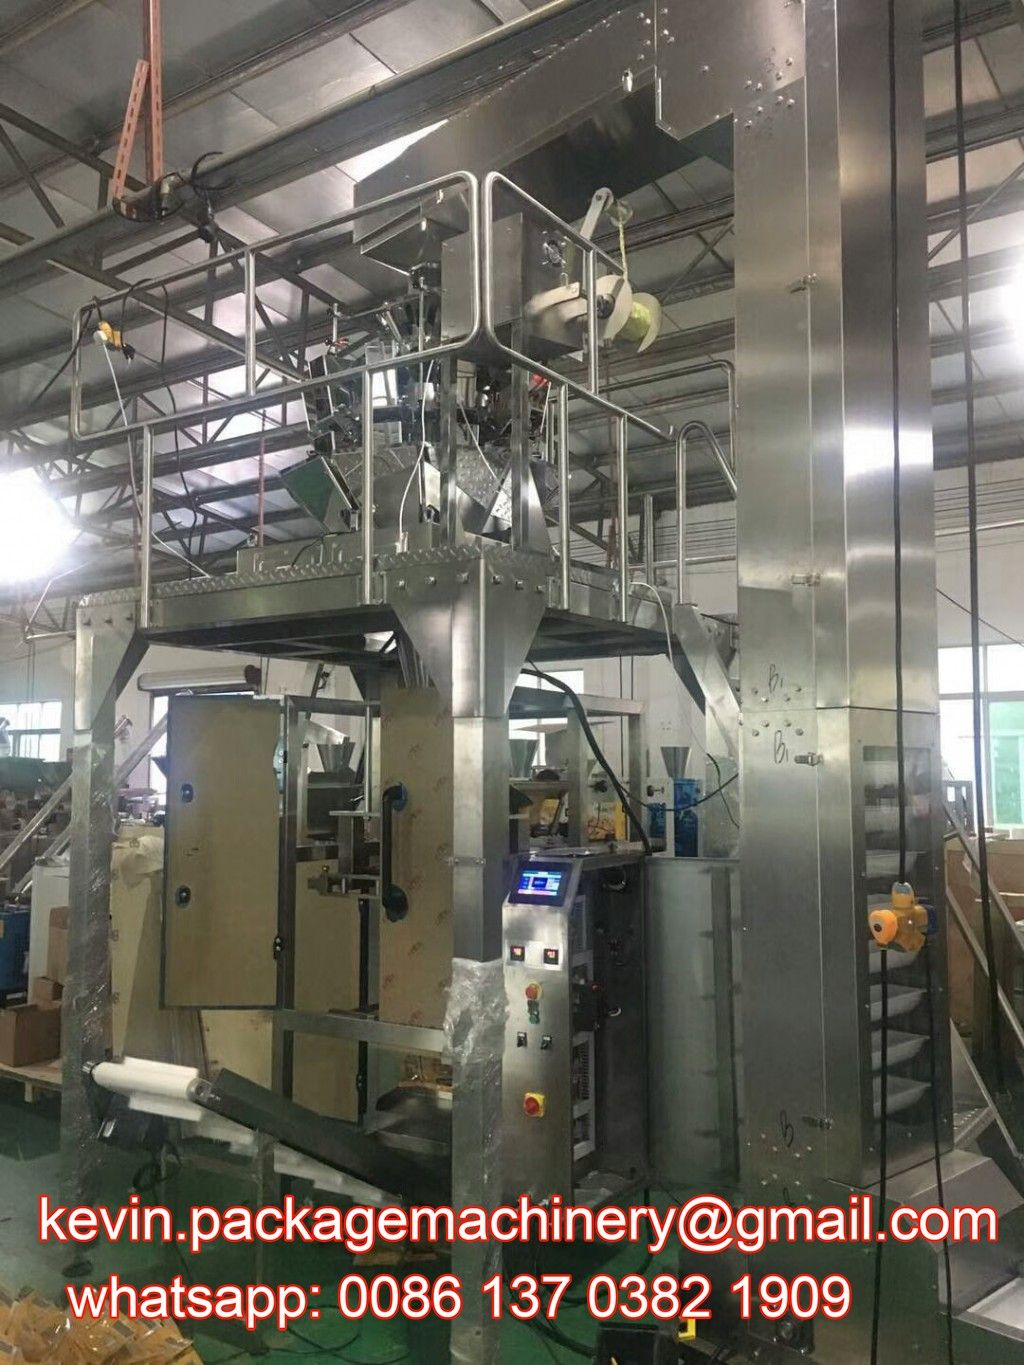 Tablet Packing Machine Candy Packing Machine Sachet Packaging Machine Price Box Packing Machine 1 Kg